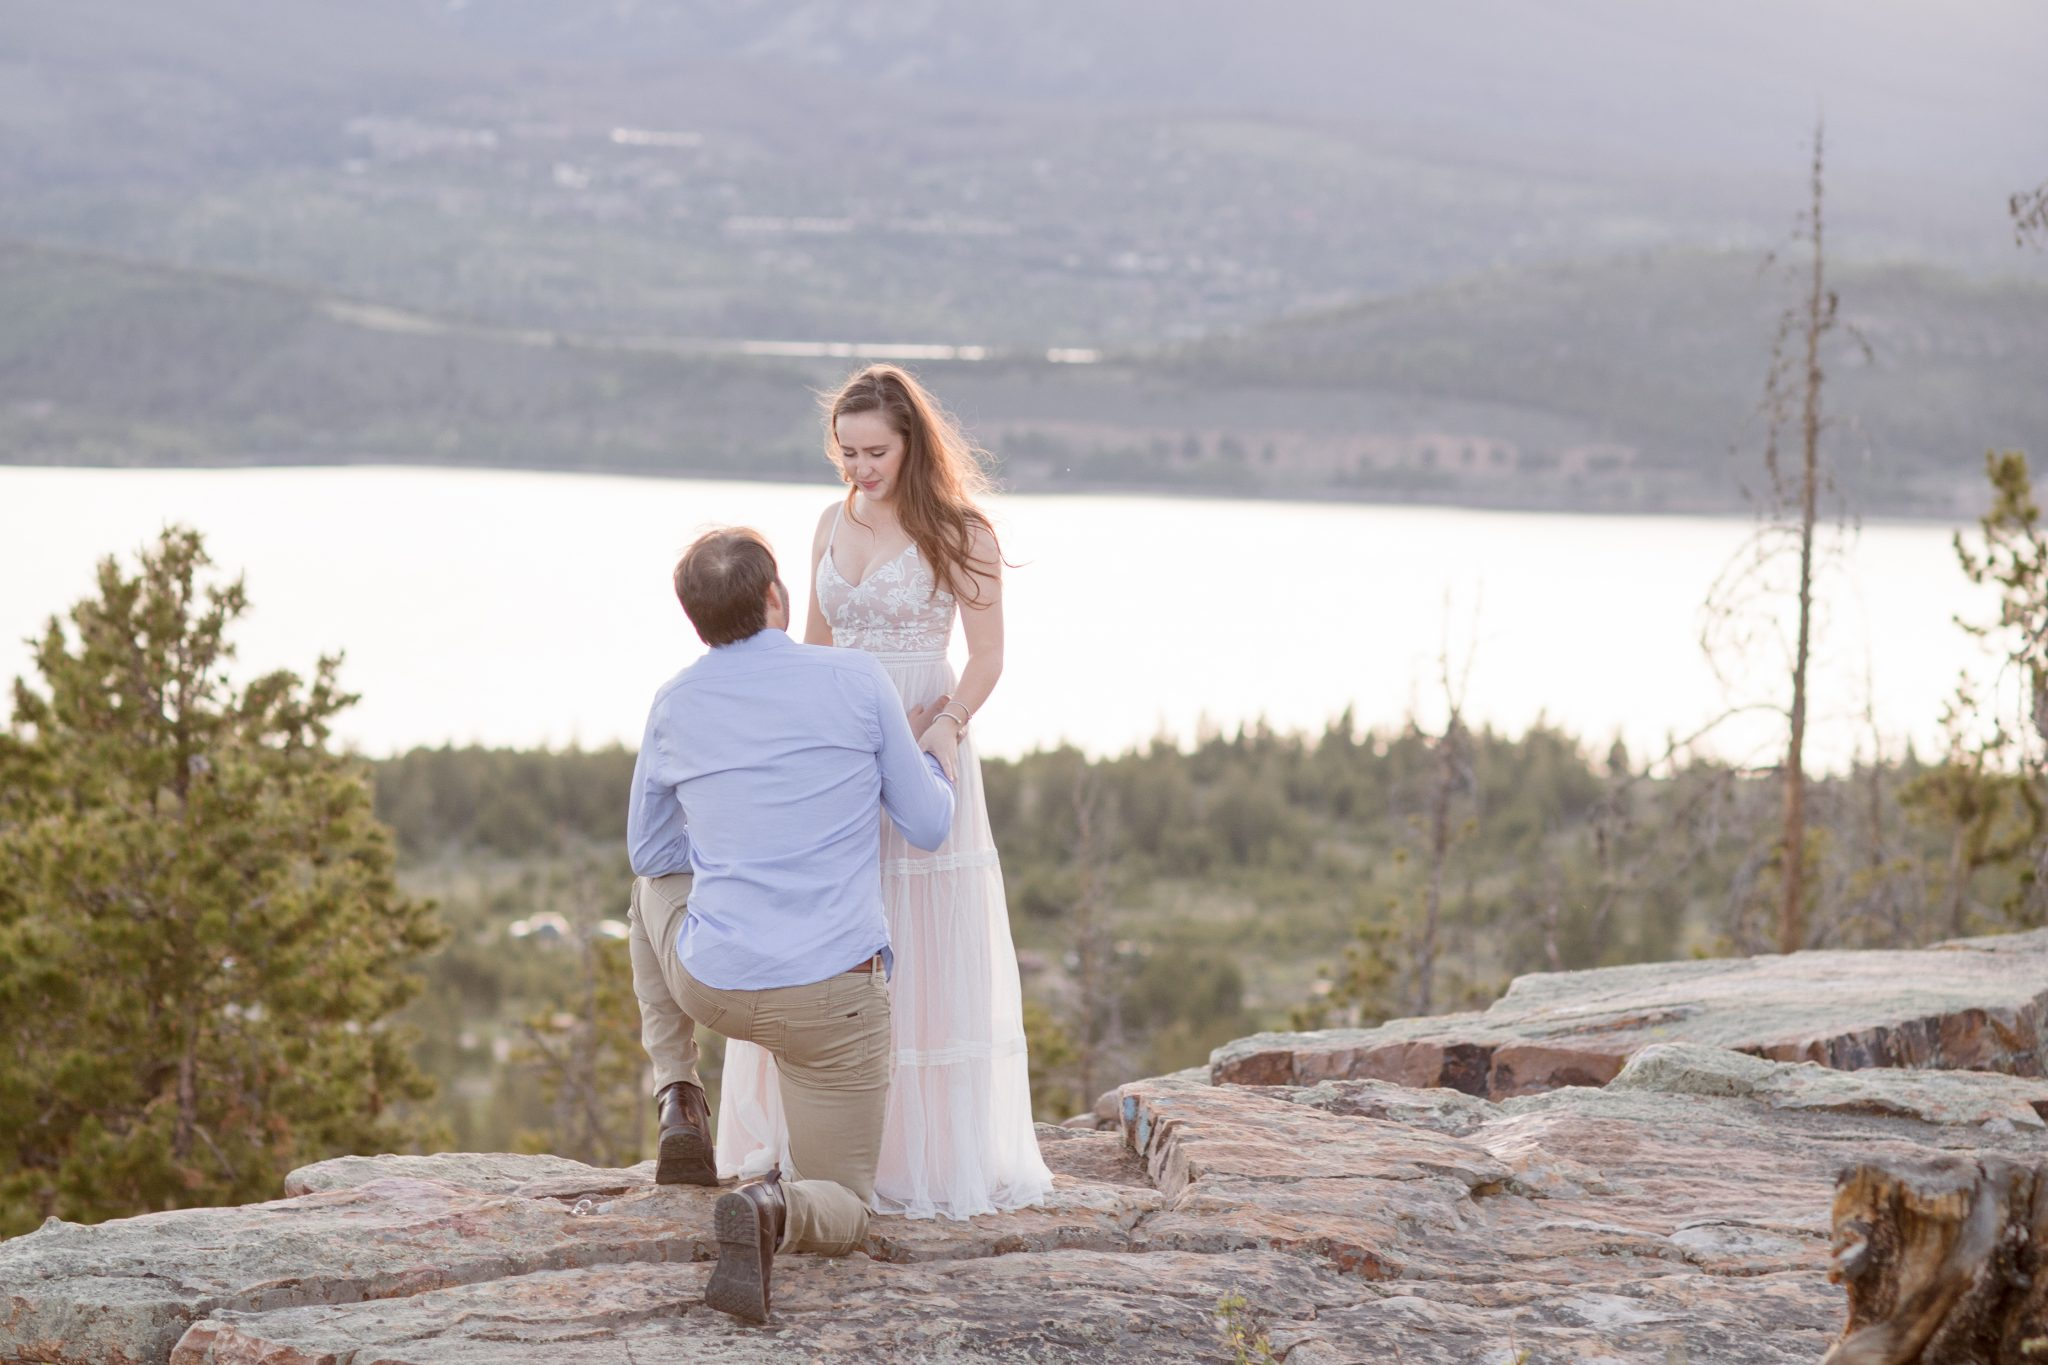 Lake Dillon in the Background of this surprise proposal in Colorado